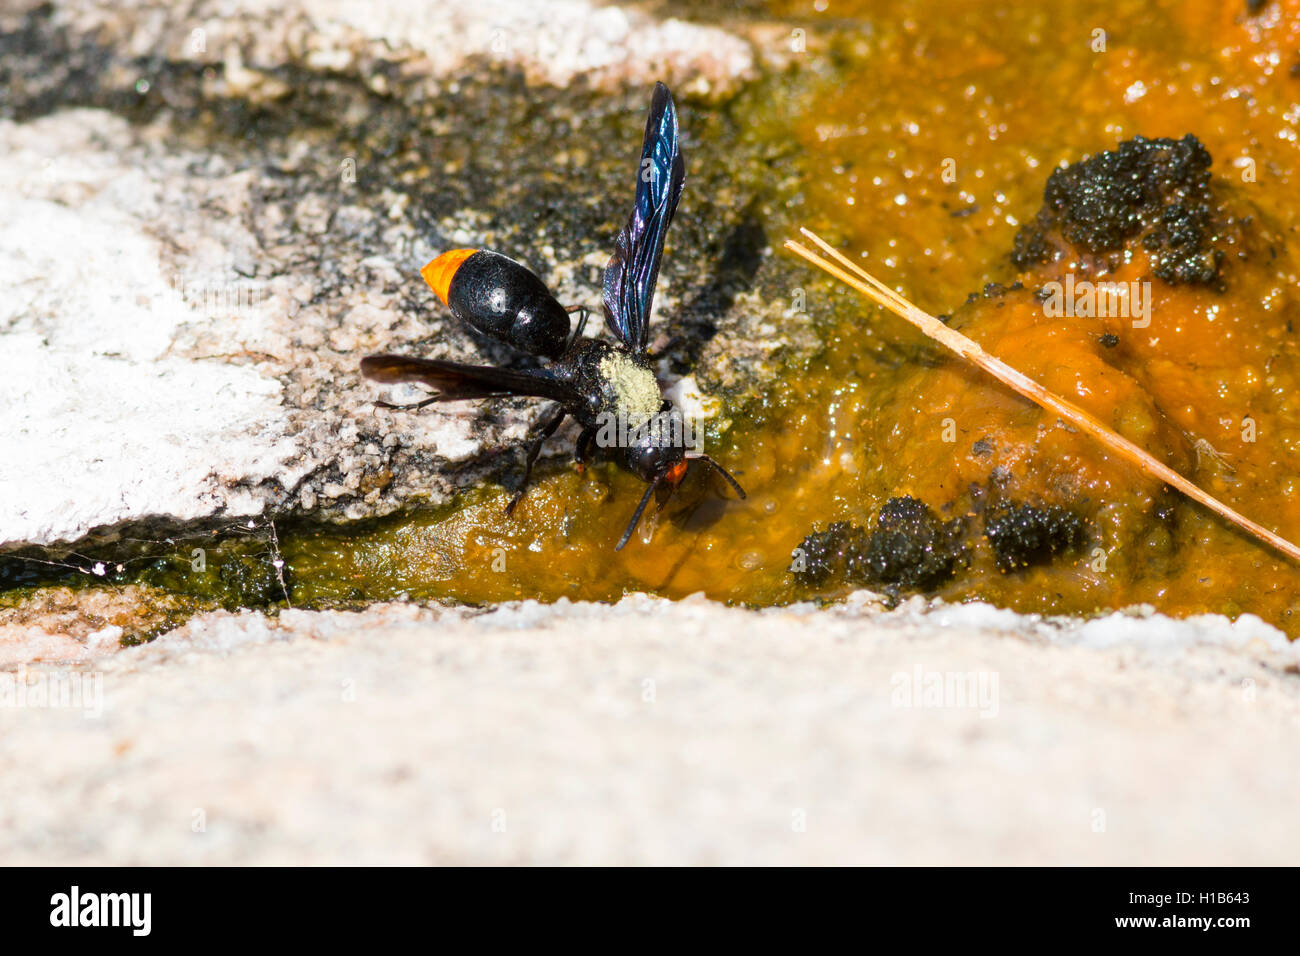 Orange-tailed potter wasp (Synagris analis) drinking from a hot spring - Stock Image